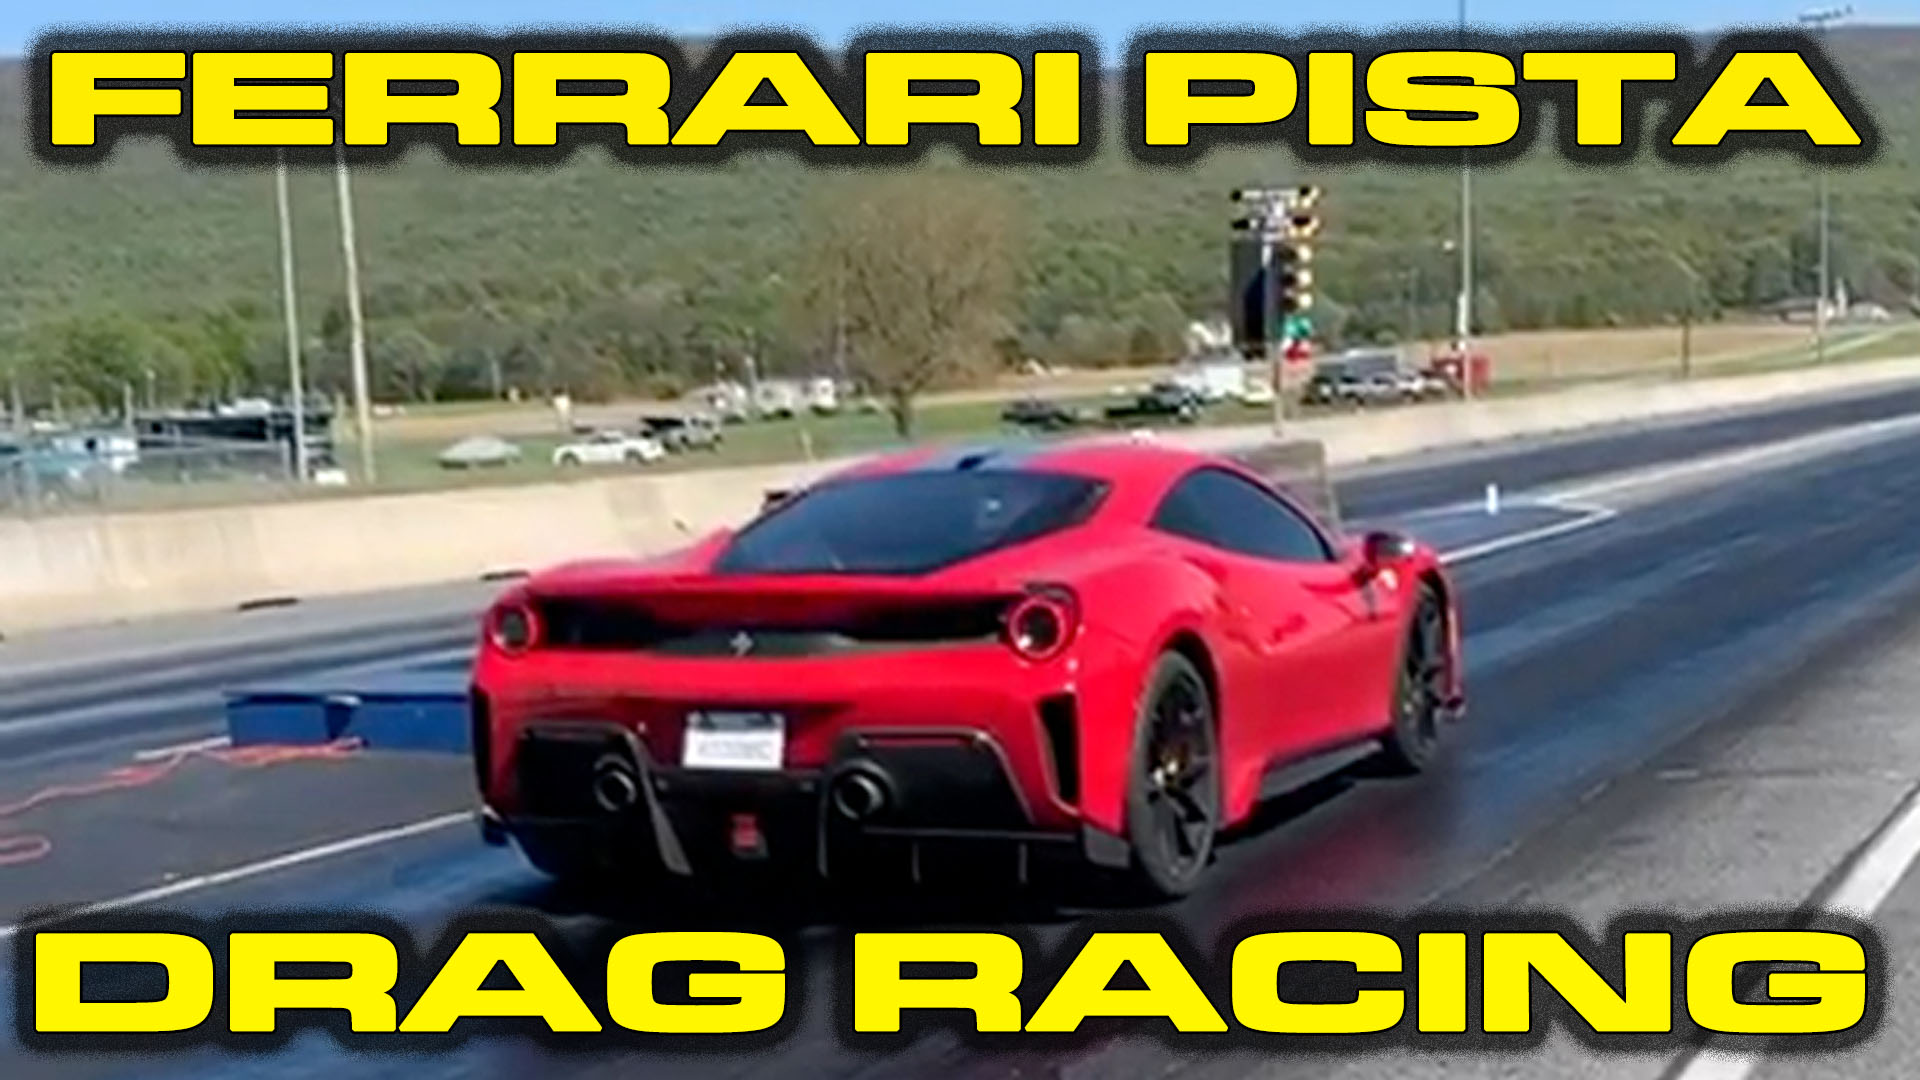 Ferrari Pista 1/4 Mile with Brooks Weisblat